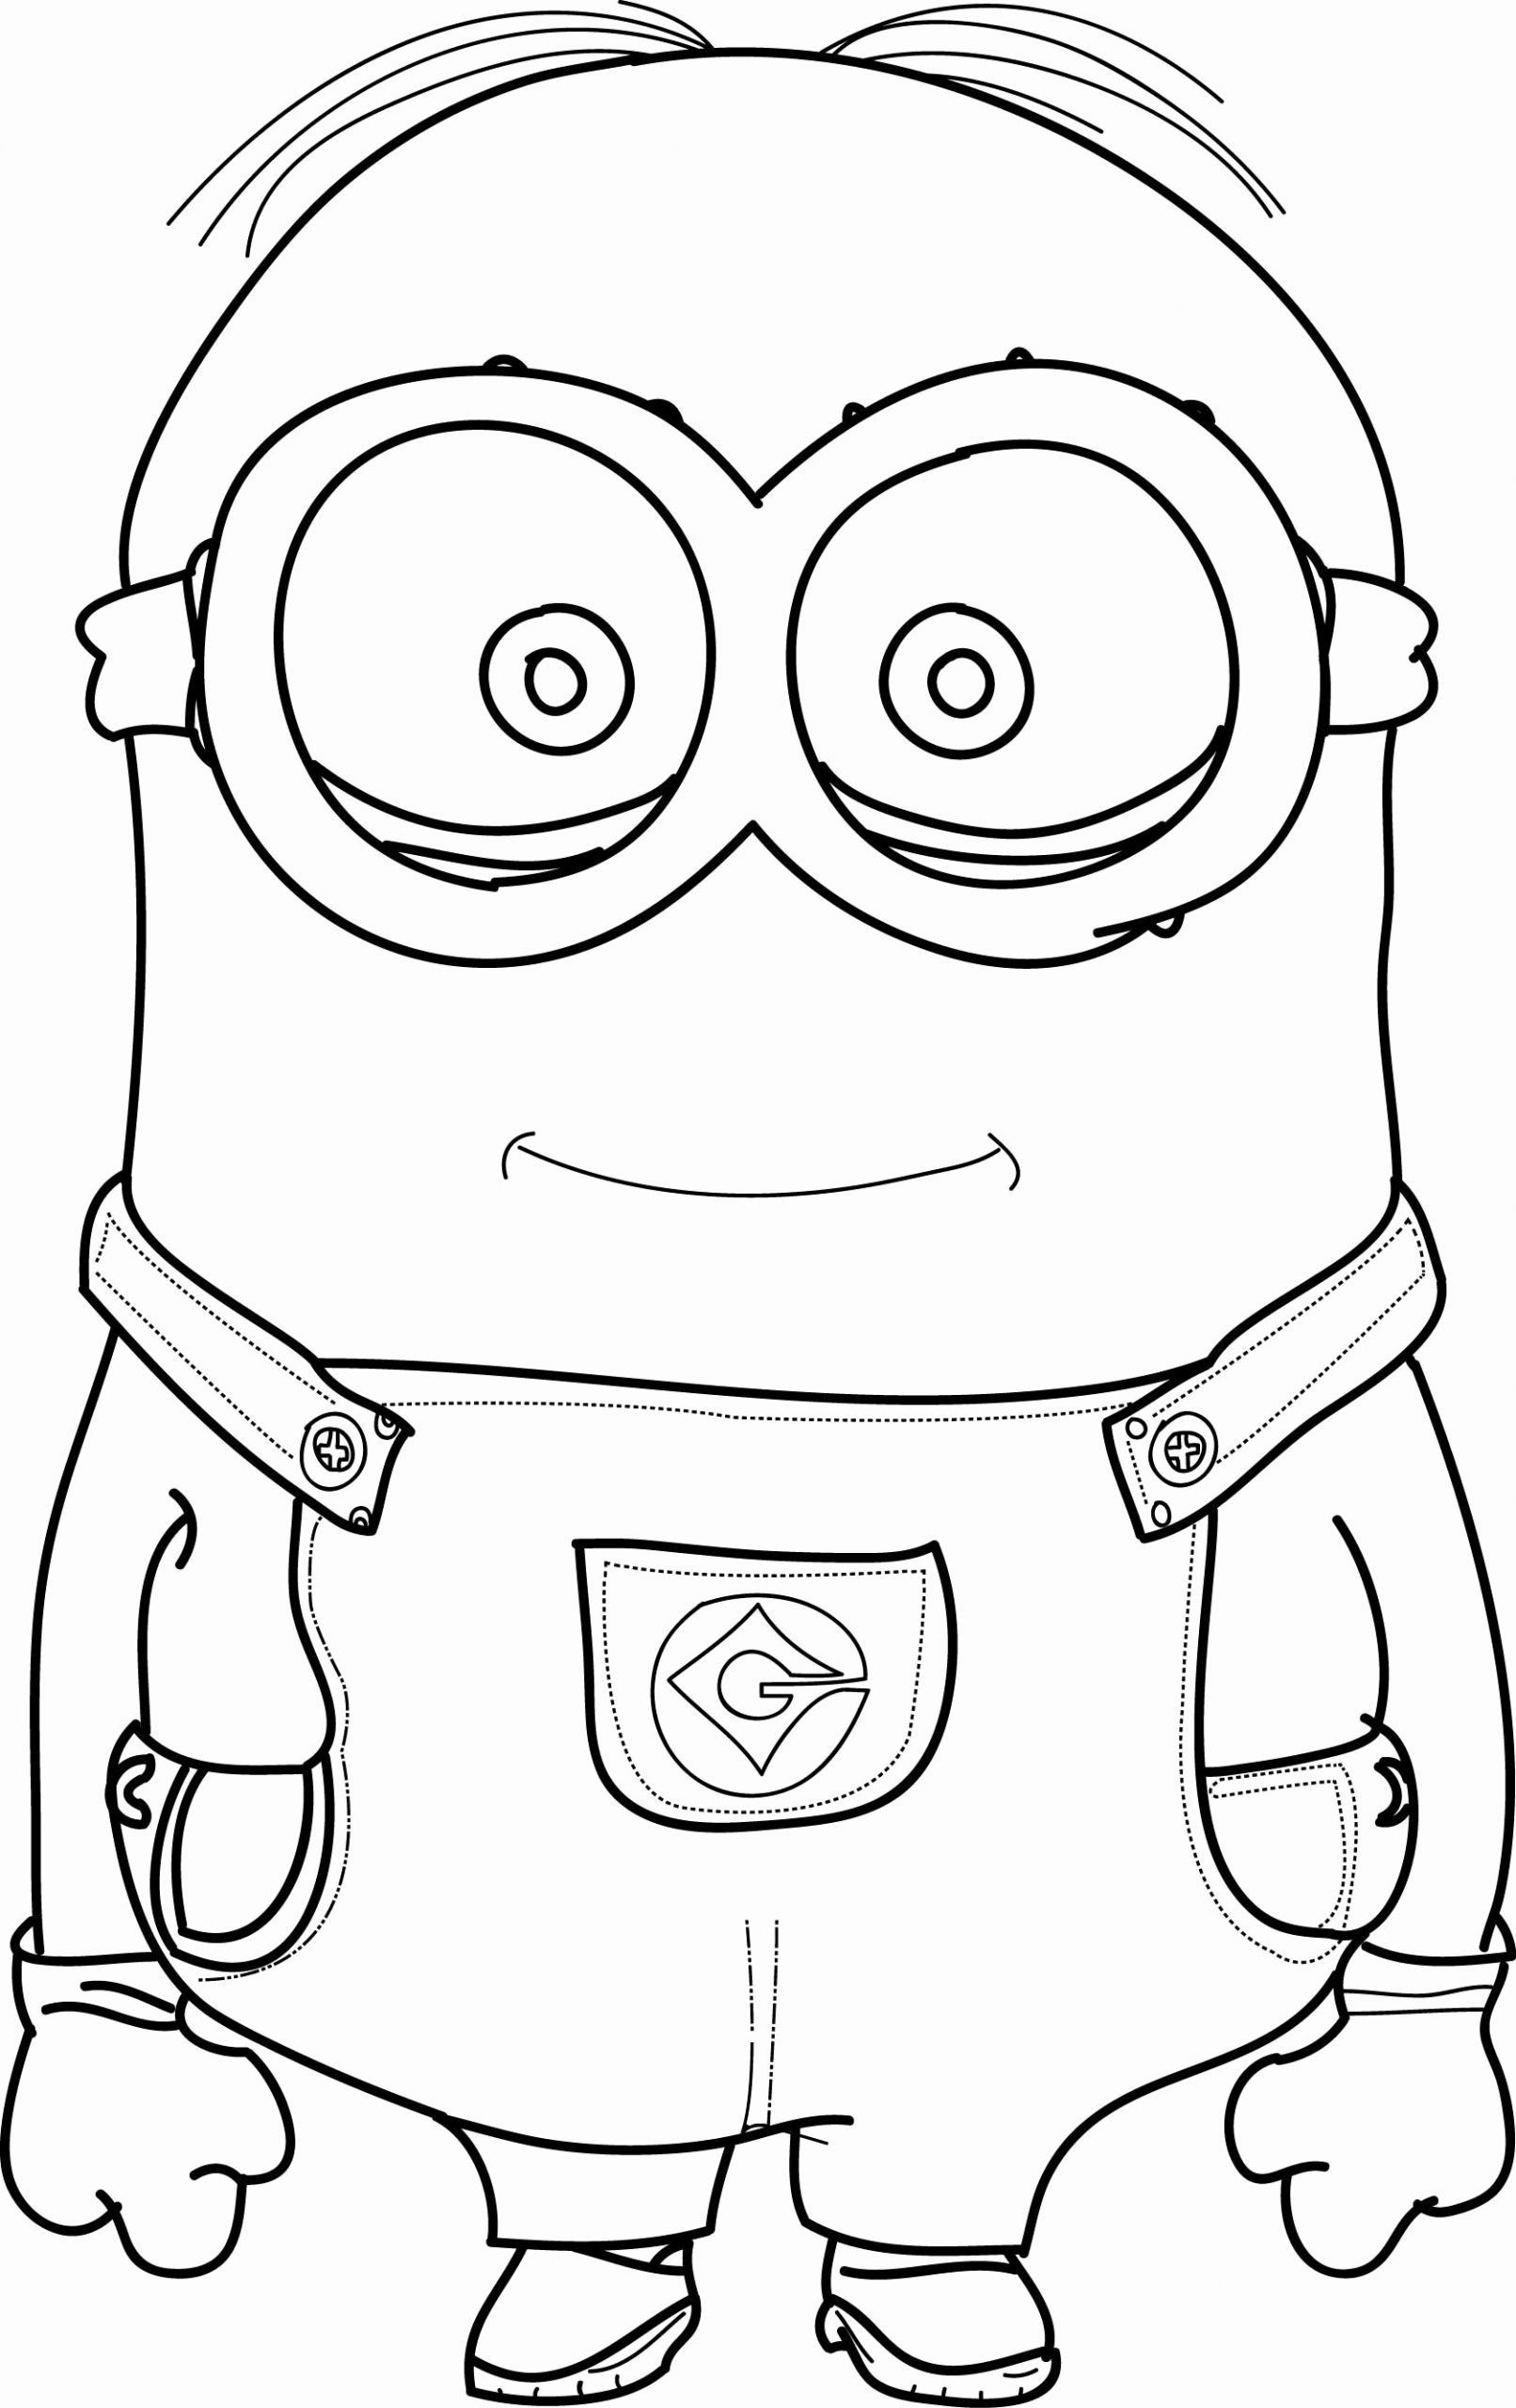 32 Cool Coloring Books In 2020 Minion Coloring Pages Minions Coloring Pages Cool Coloring Pages